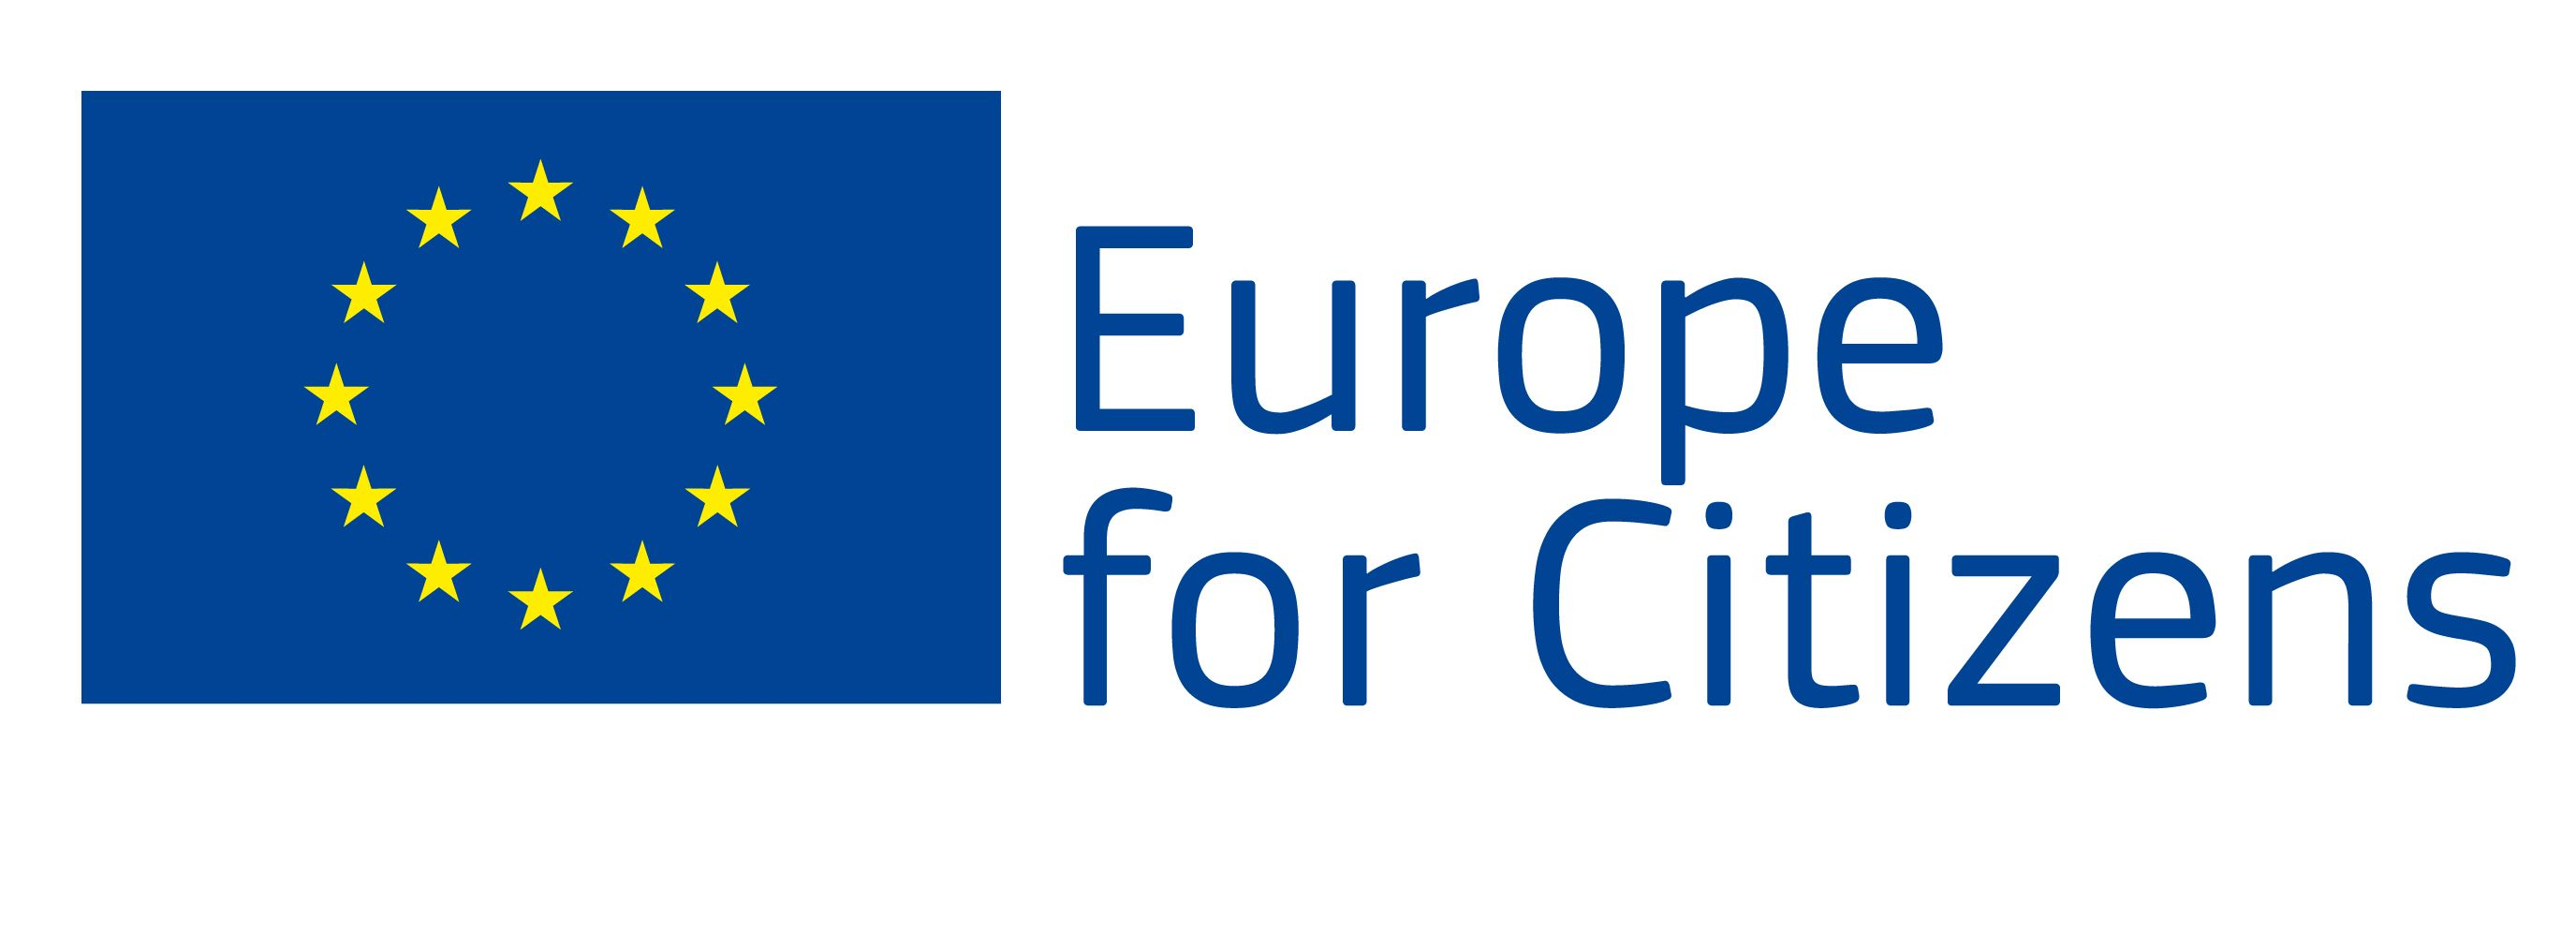 LOGO_europe_for_citizens